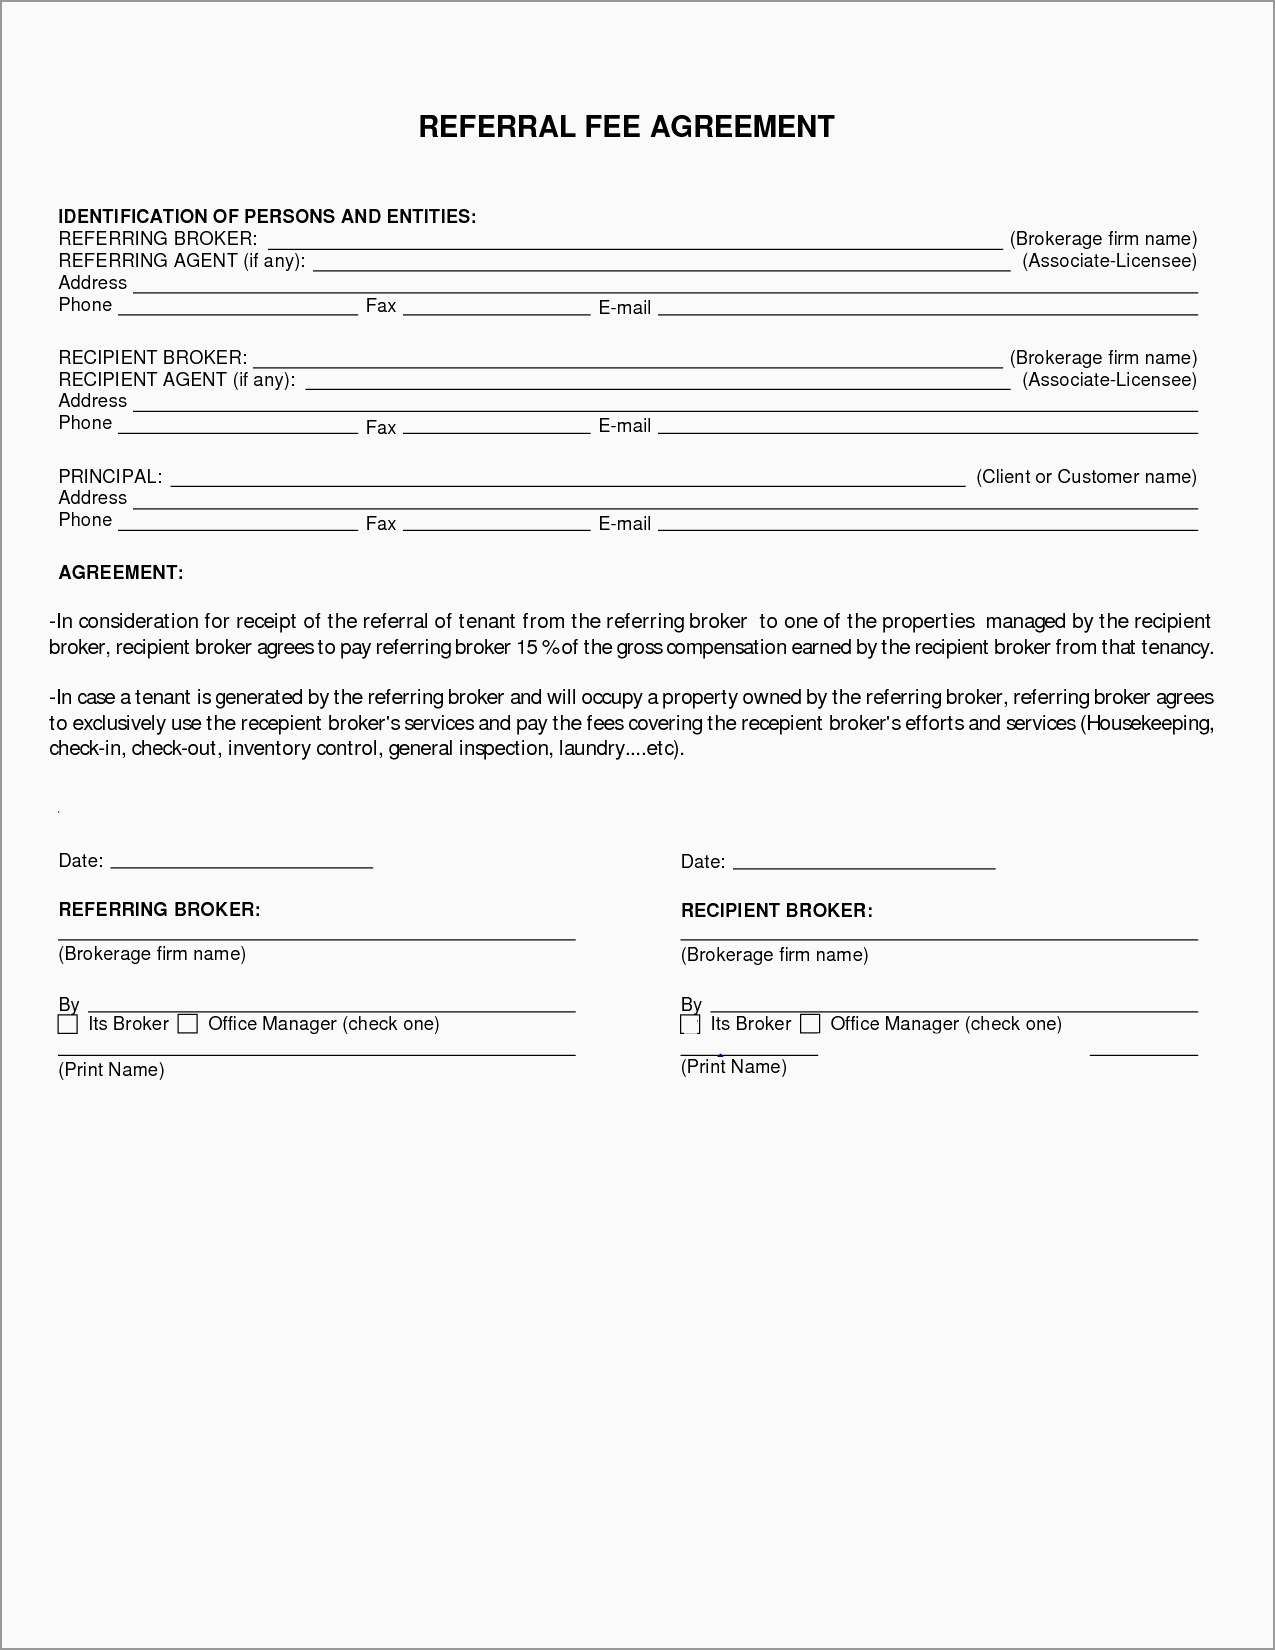 Free Real Estate Referral Form Template Astonishing Referral Fee Within Real Estate Finders Fee Agreement Template